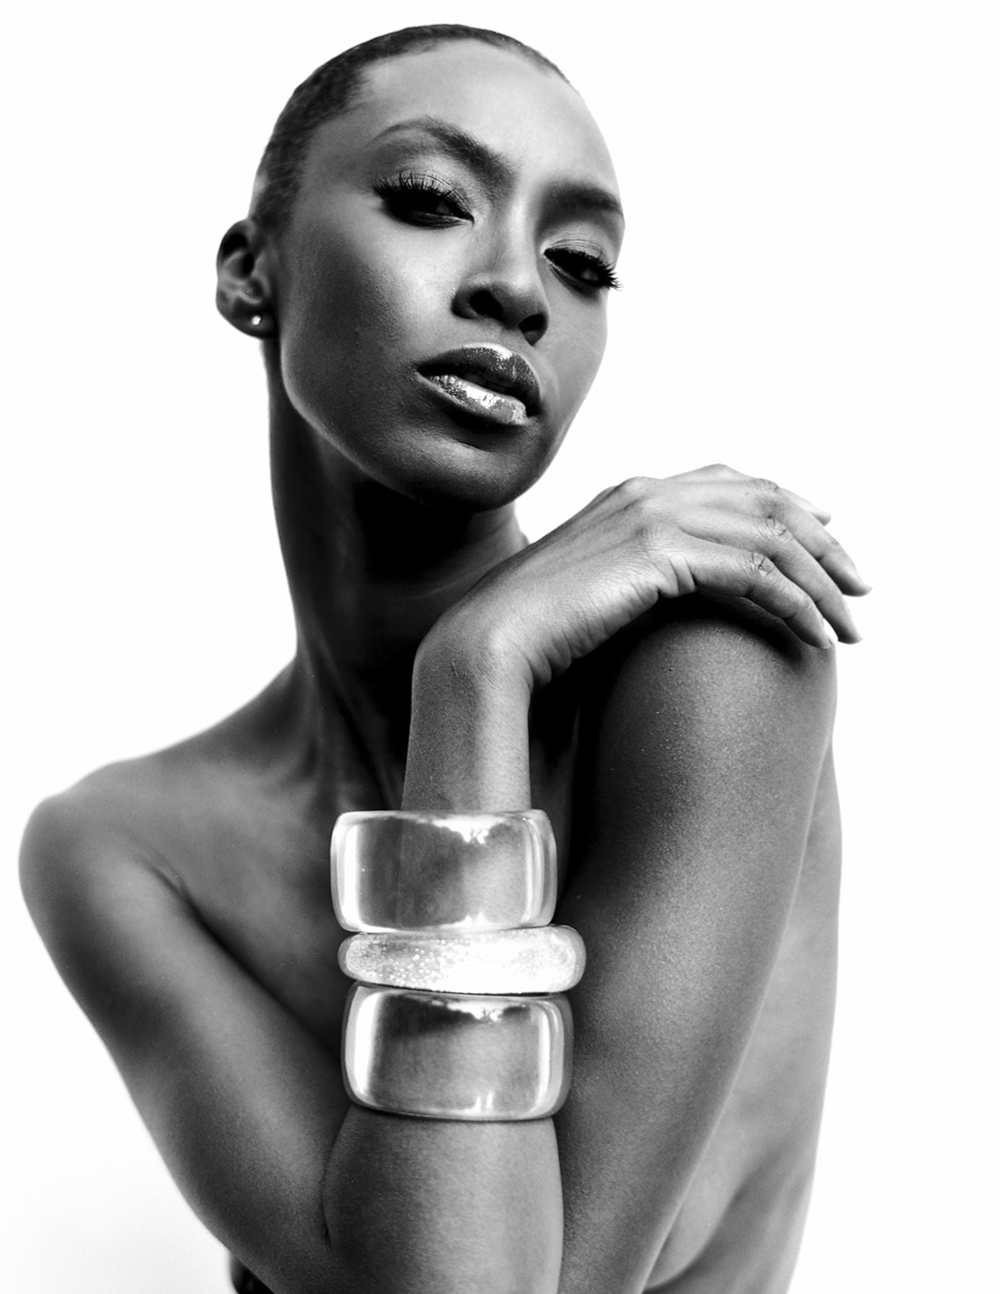 BW_BEAUTY_JEWELRY_8_x_5.jpg